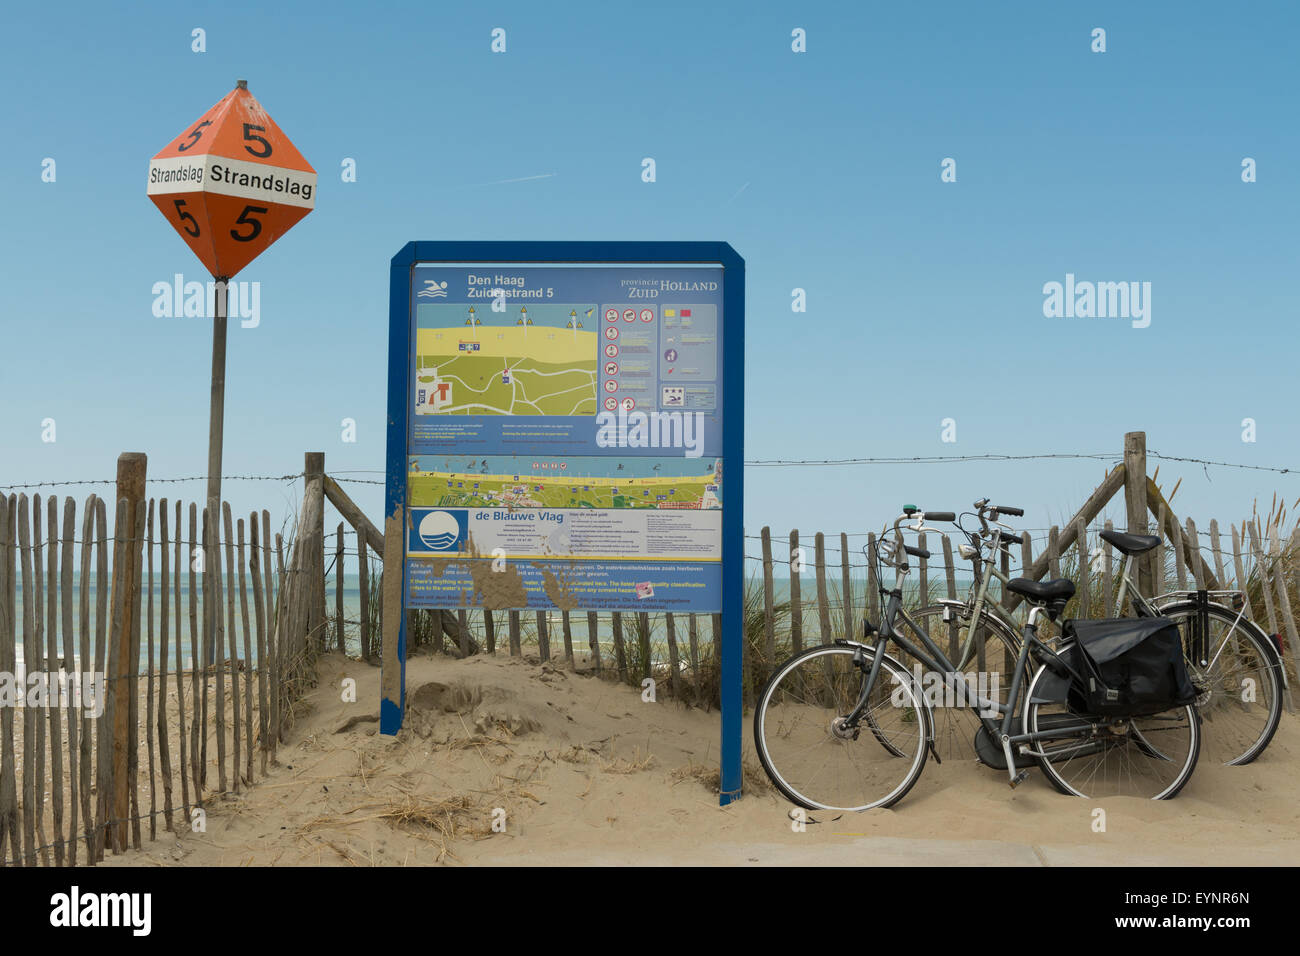 bikes and information for blue flag beach at Zuiderstrand 5, Kijkduin, Schevening The Hague, Netherlands - Stock Image